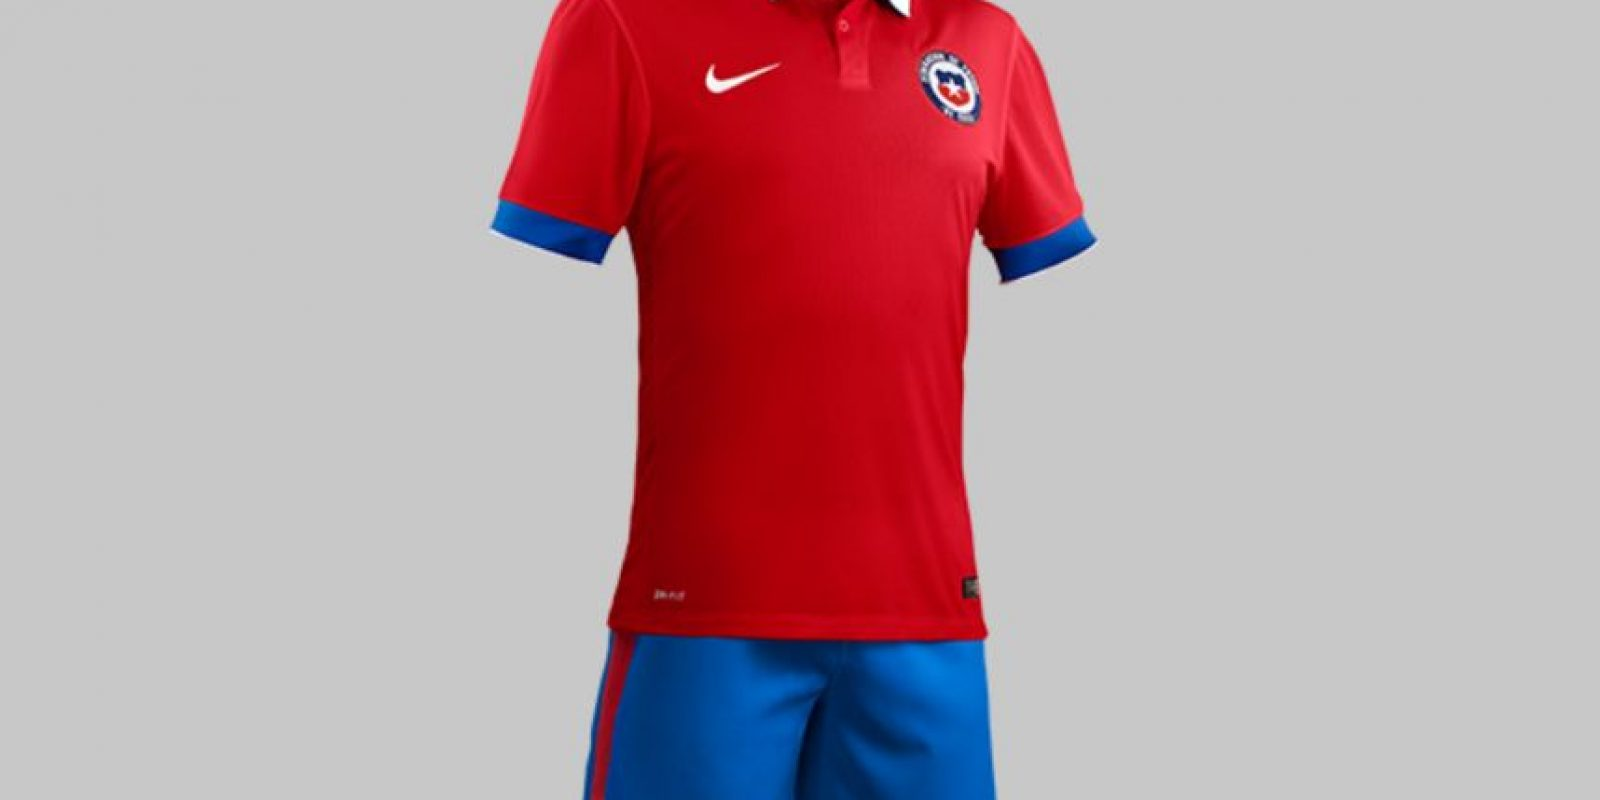 Foto: Tomado de http://www.nike.com/cl/es_la/c/football/kit-chile